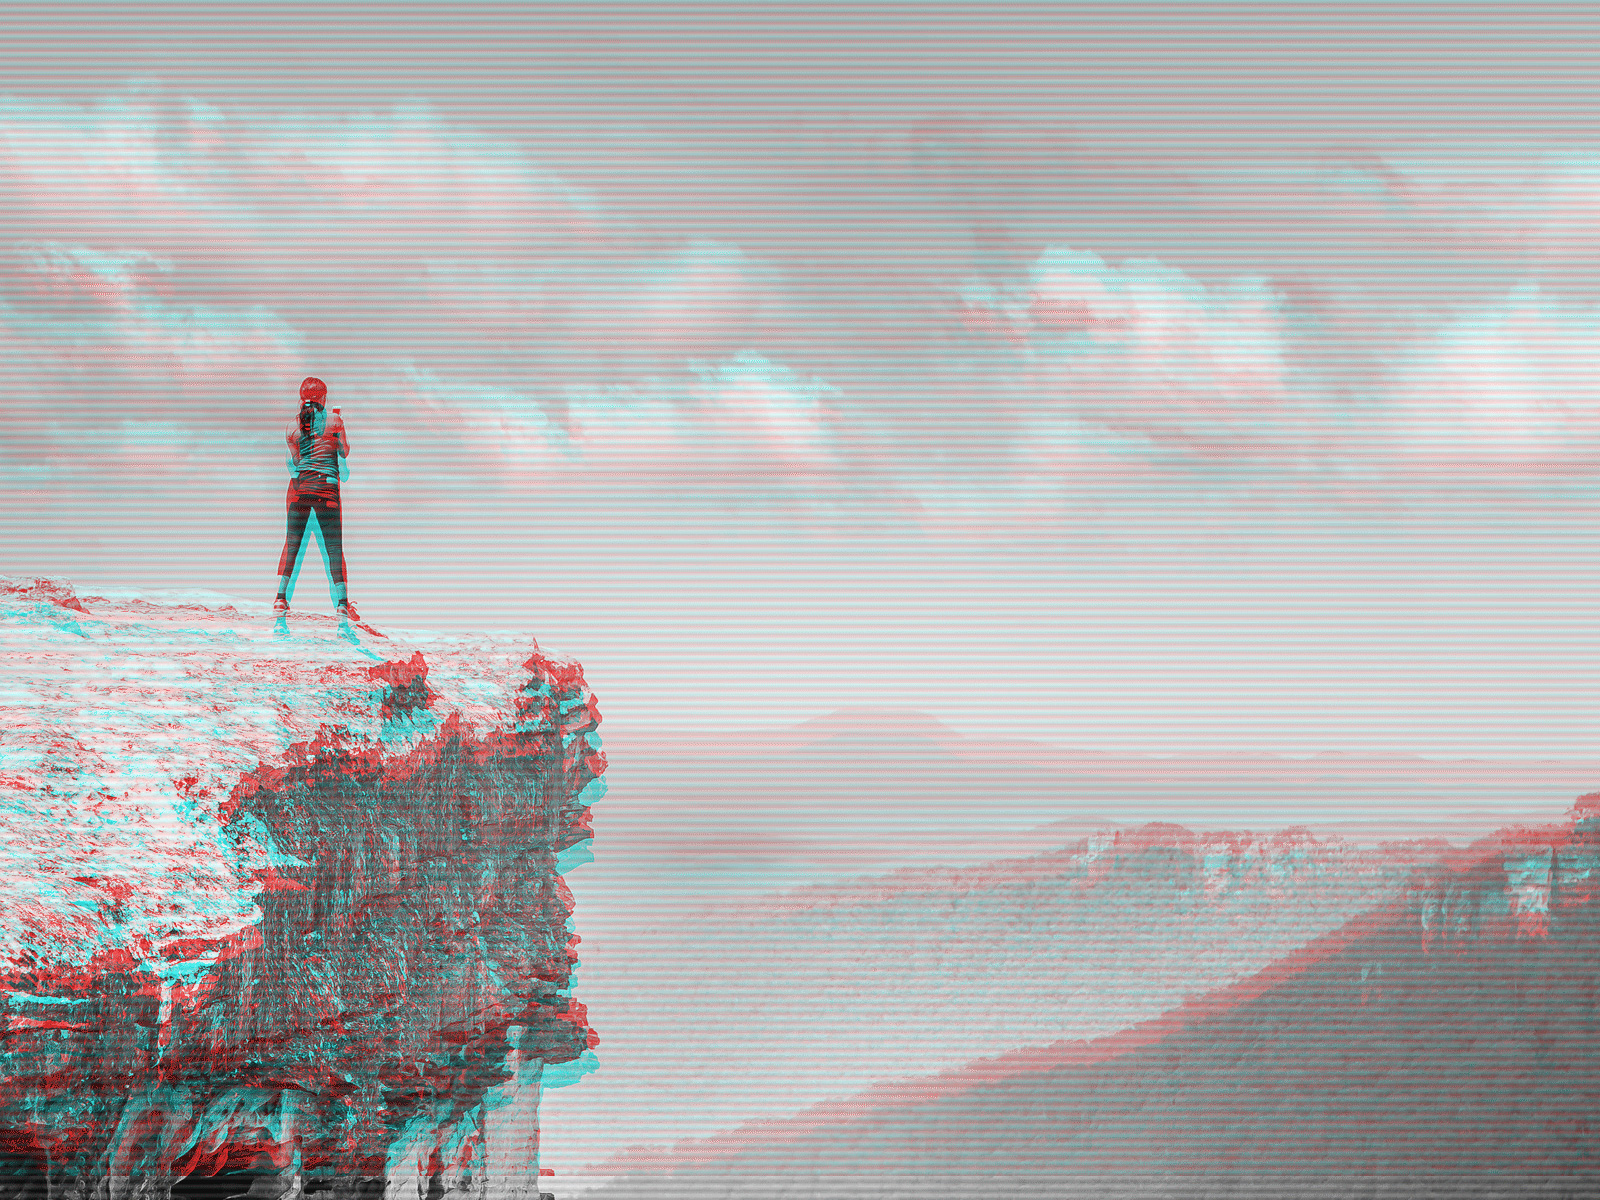 Animated Glitch Effect Action example image 2